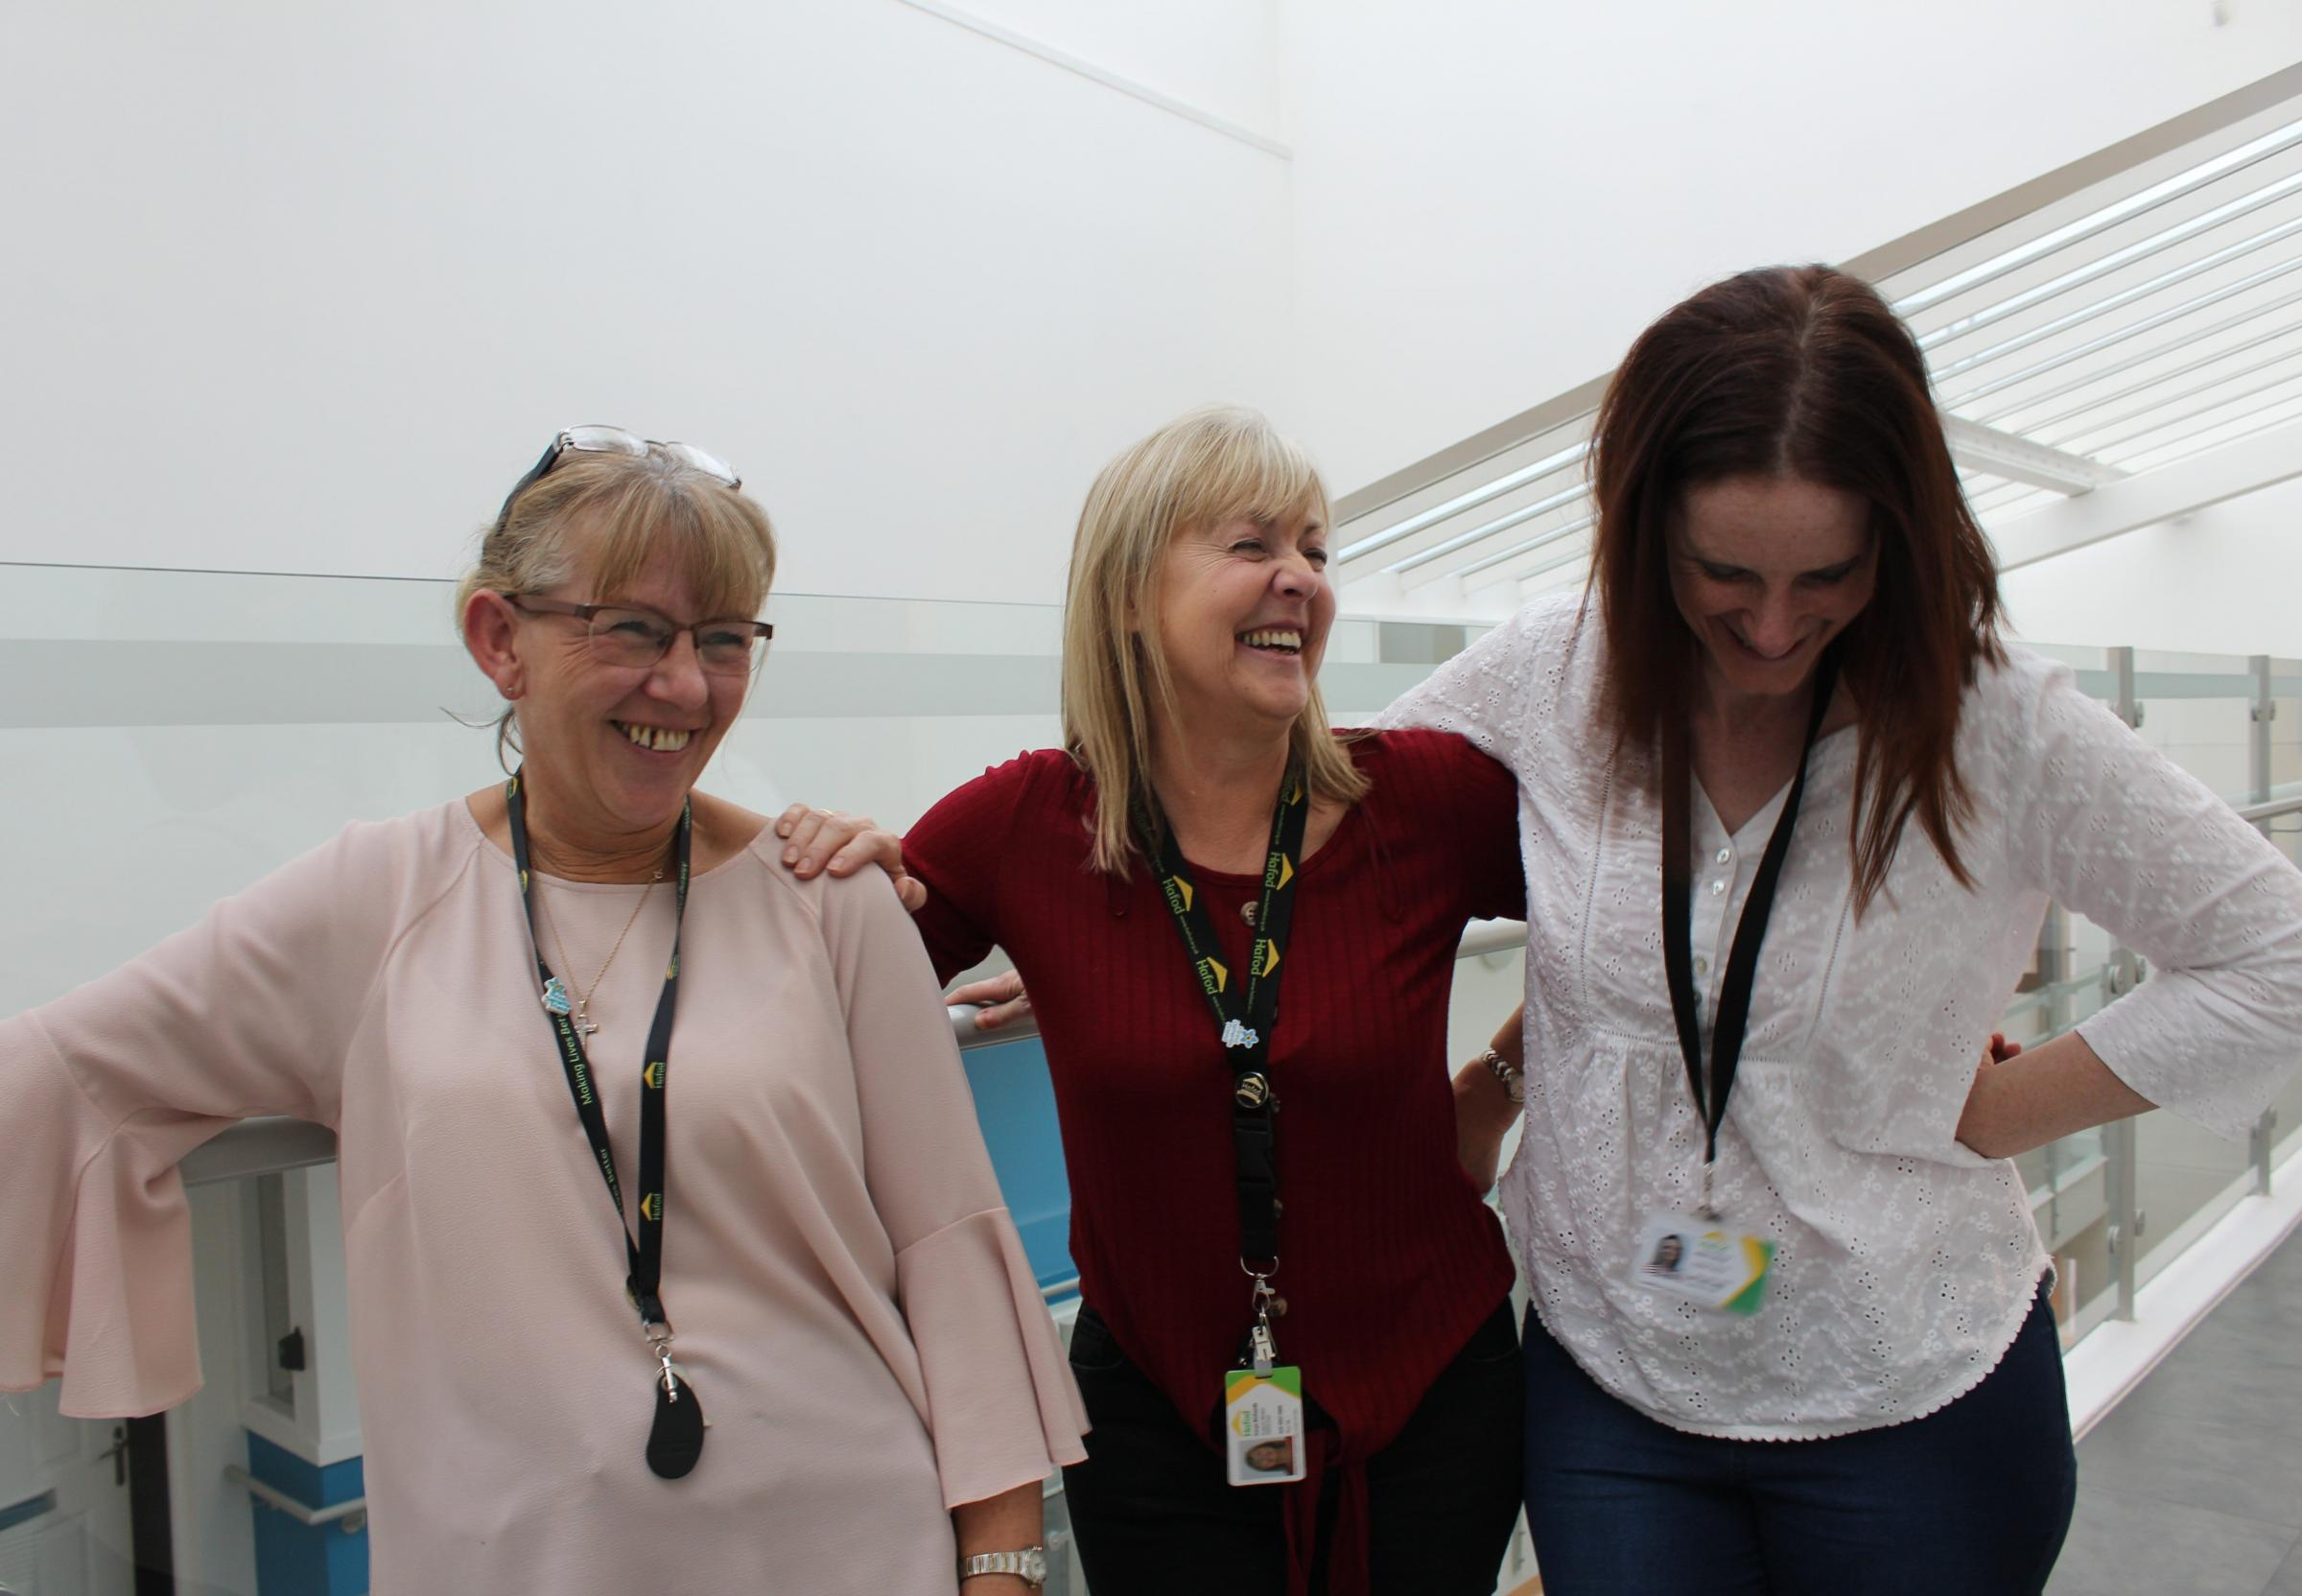 Hafod's team of support workers Susanne Osman, Carys Richards, and Helen Dobson